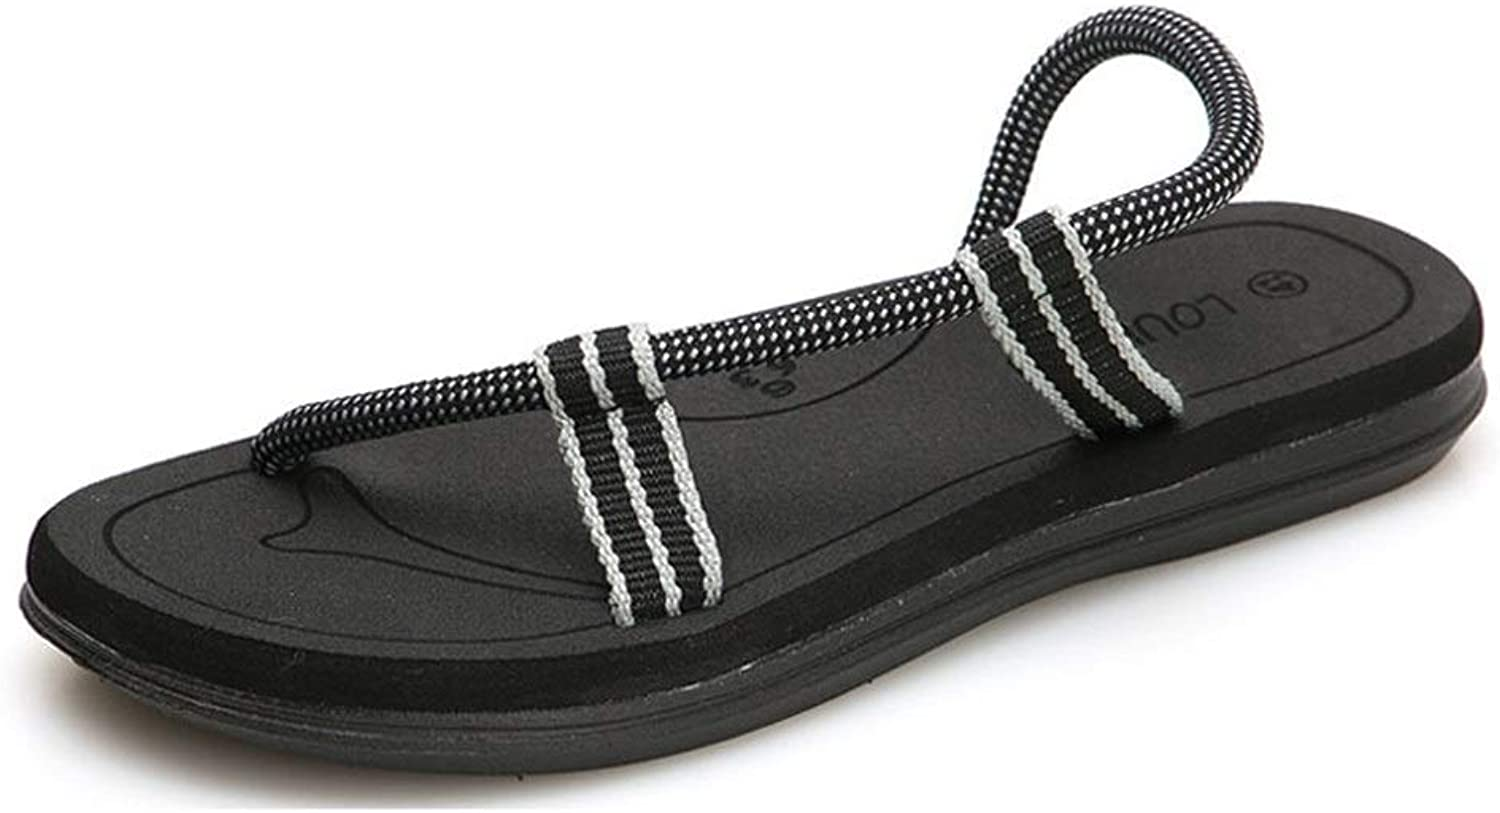 MUJUN Fashion Summer Beach Sandals for Men Or Women Outdoor Casual Lightweight Slippers Comfortable Anti-Slip Waterproof Flat Round Toe (color   Black, Size   9.5 M US)